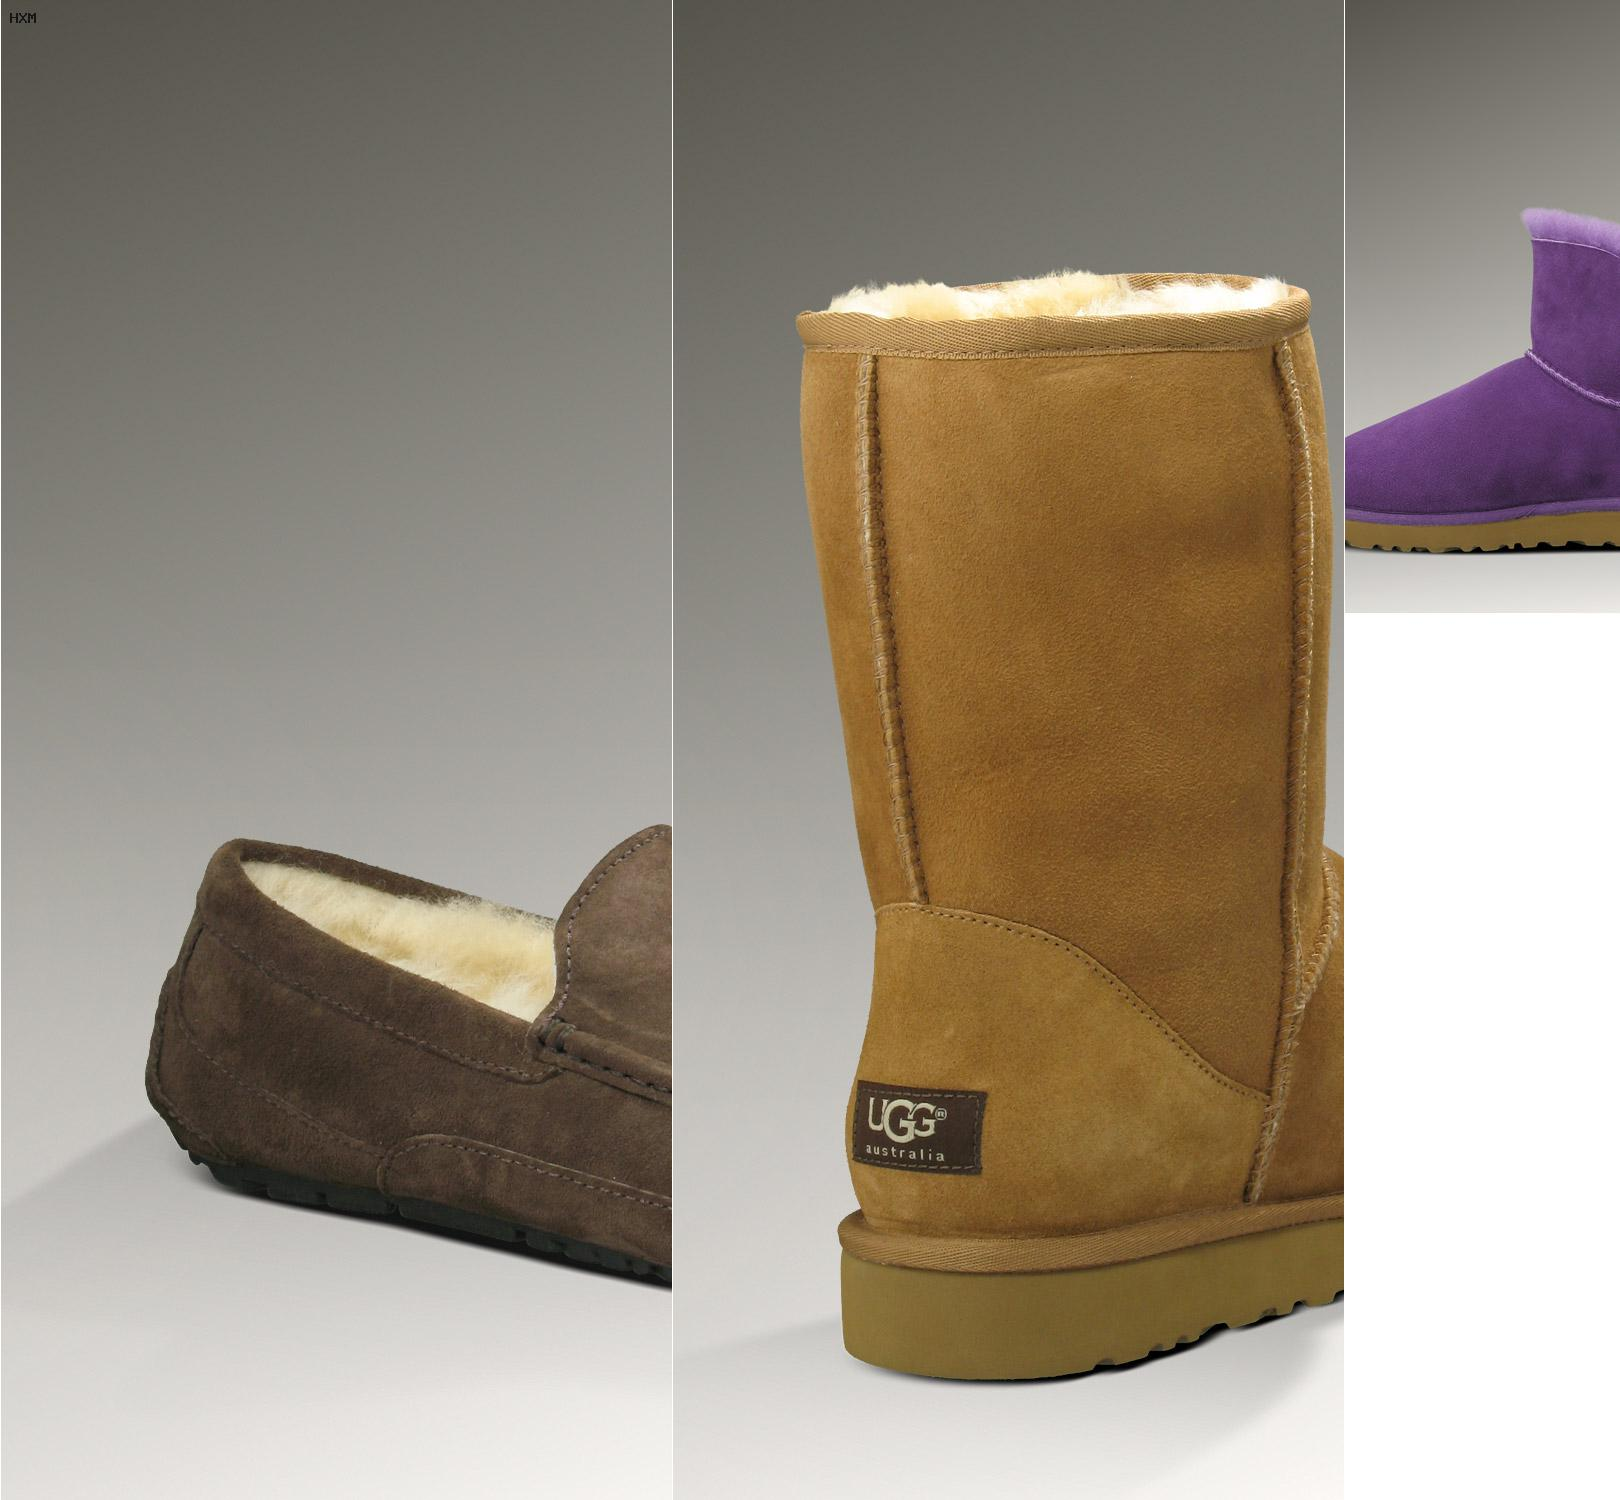 materiale ugg boots